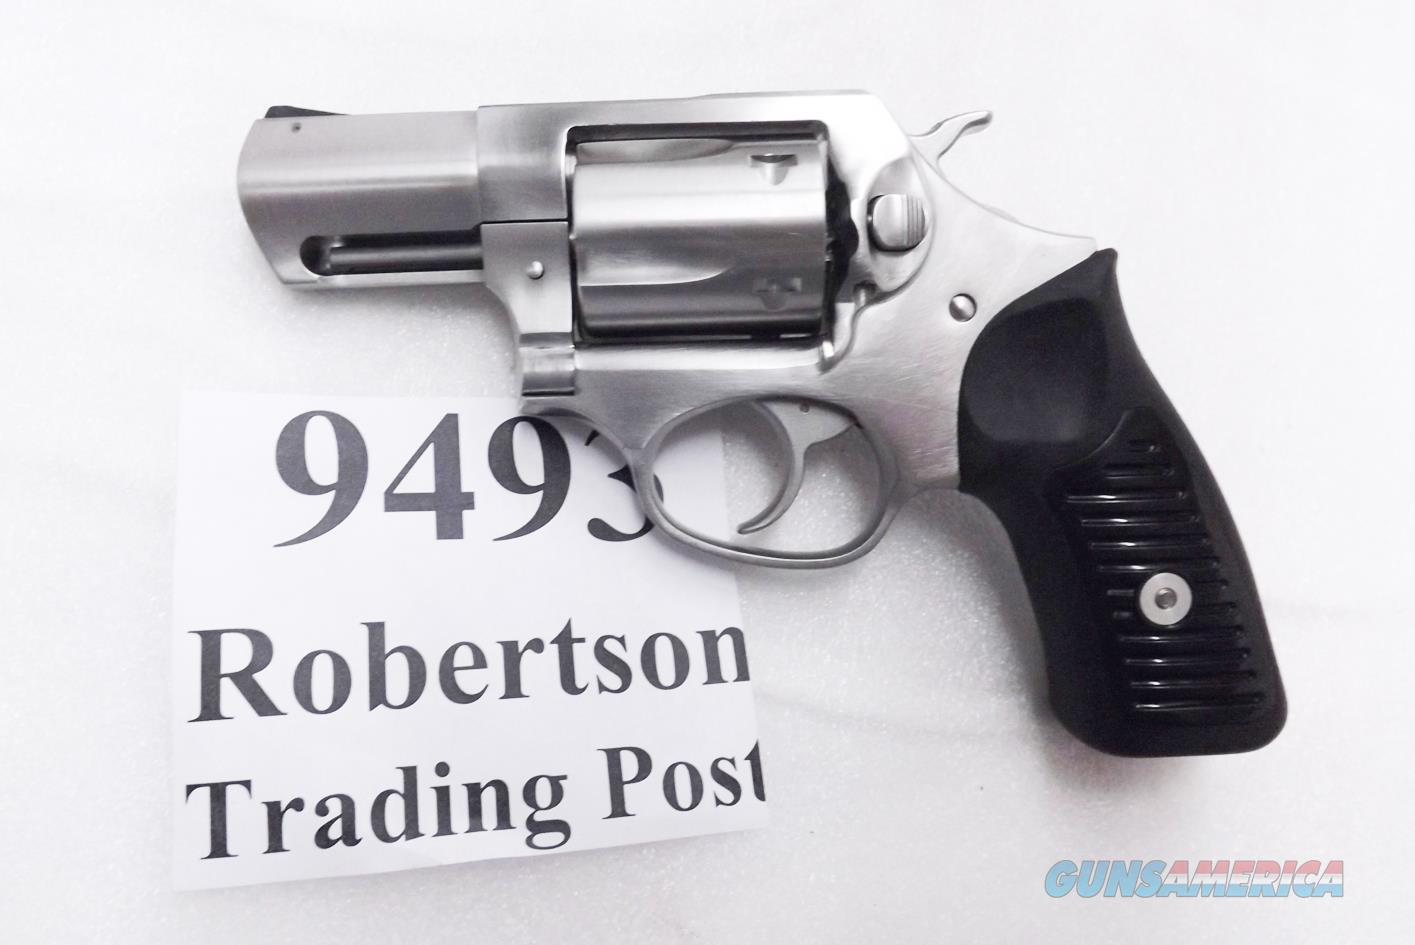 Ruger .357 Magnum SP-101 Double Action 2 inch Stainless SP101 DASA Spur Hammer 357 Mag 38 Special Snub VG-Exc in Box 5718 KSP321X   Guns > Pistols > Ruger Double Action Revolver > SP101 Type